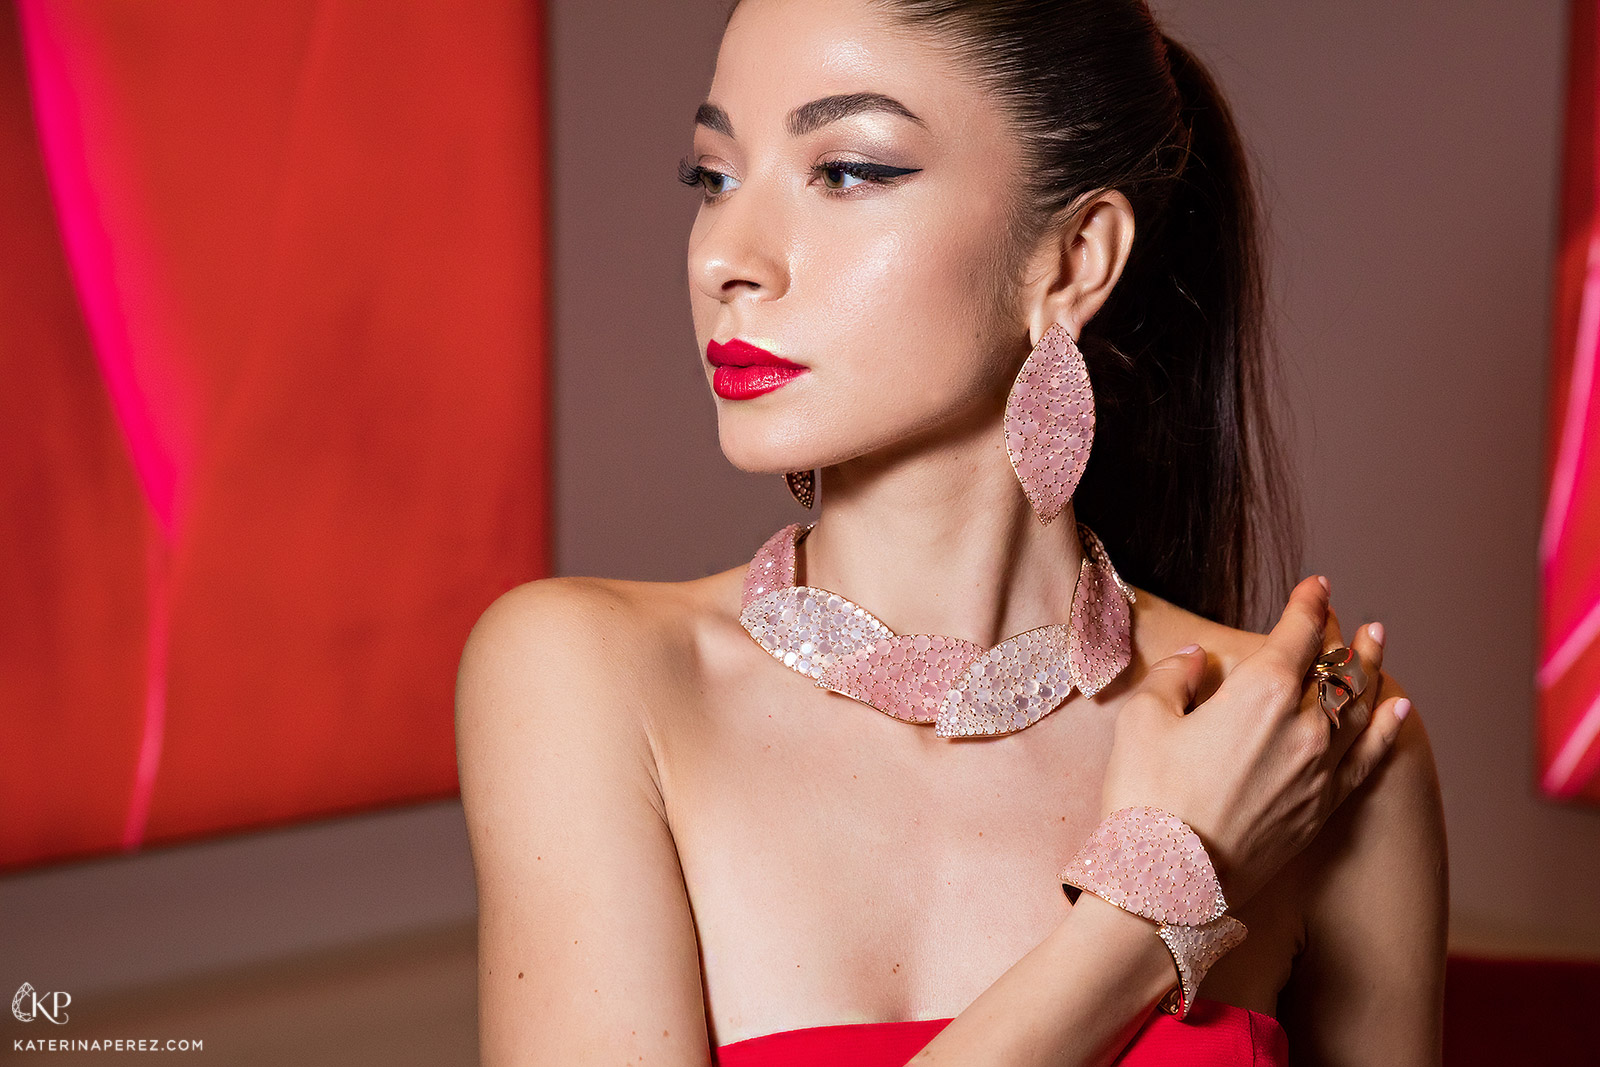 Pasquale Bruni Lakshmi collection jewellery in yellow gold with pink chalcedony. Photo by Simon Martner for Katerina Perez